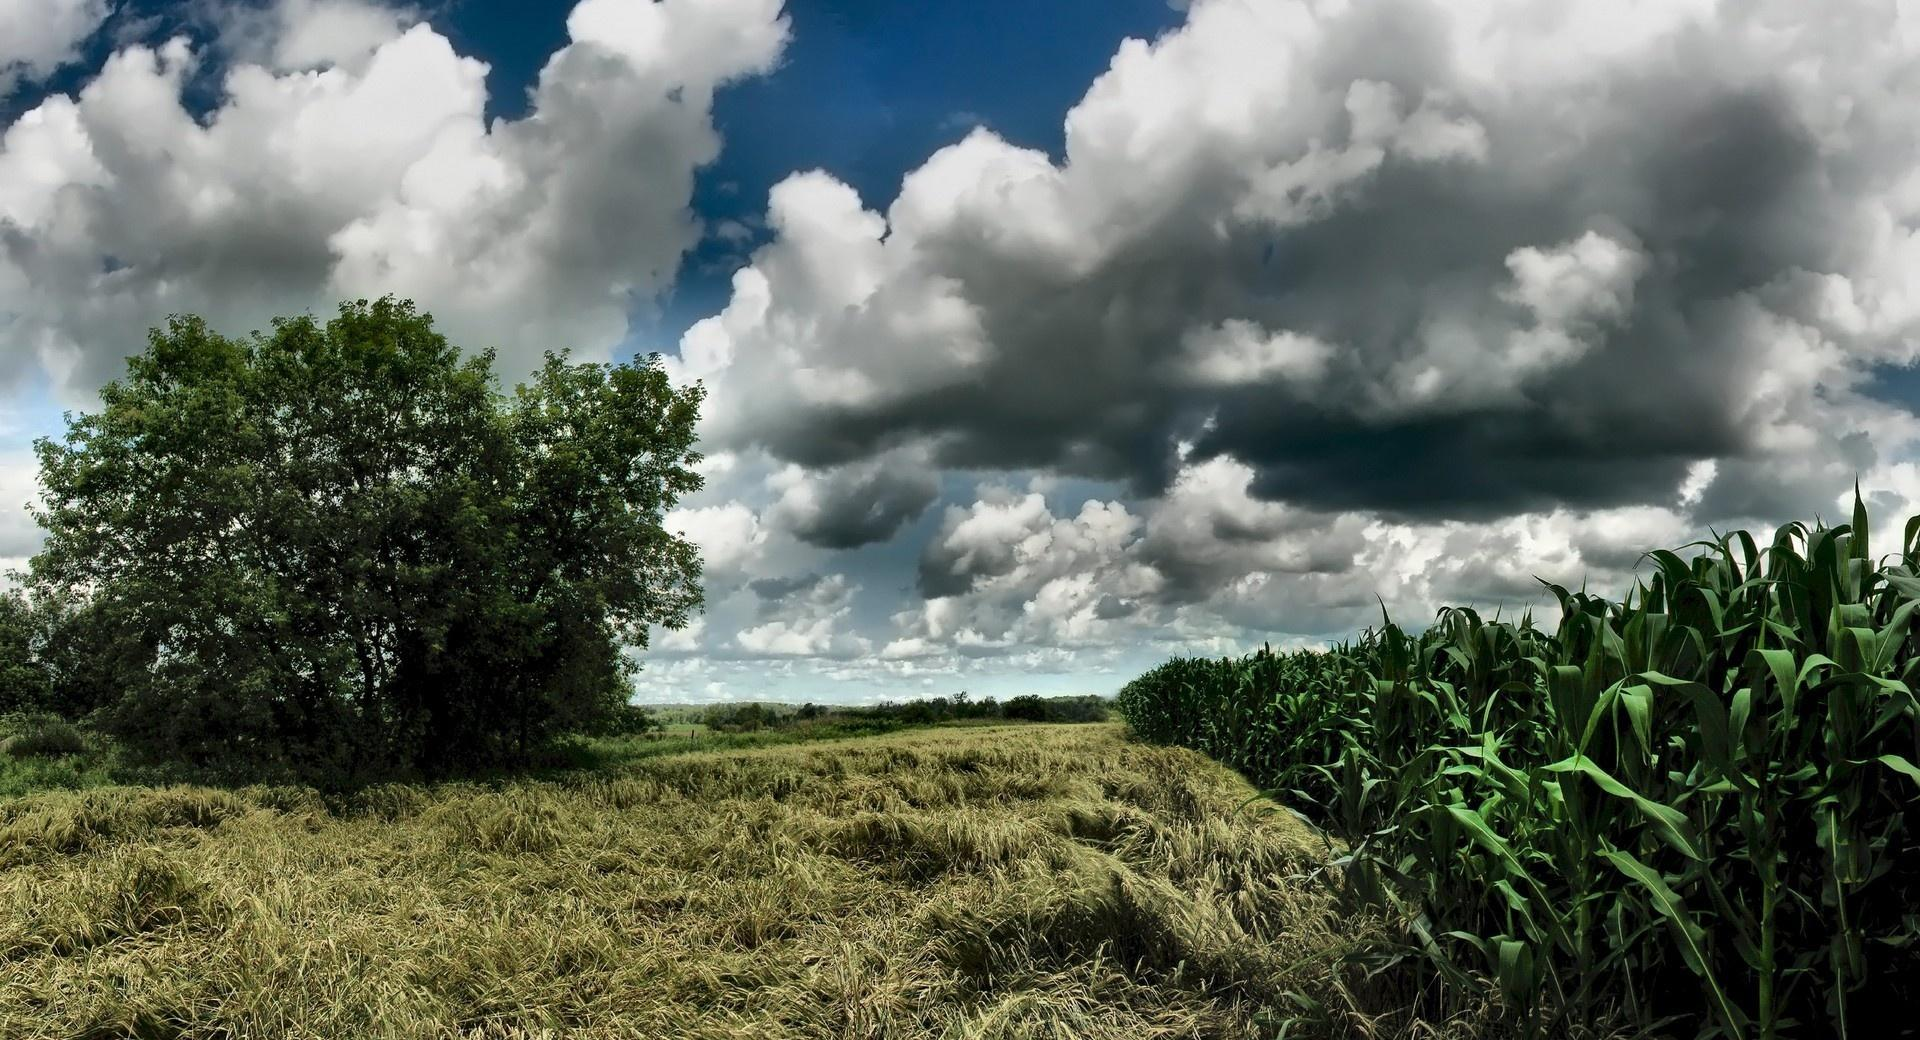 Cornfield Cloudy Sky wallpapers HD quality